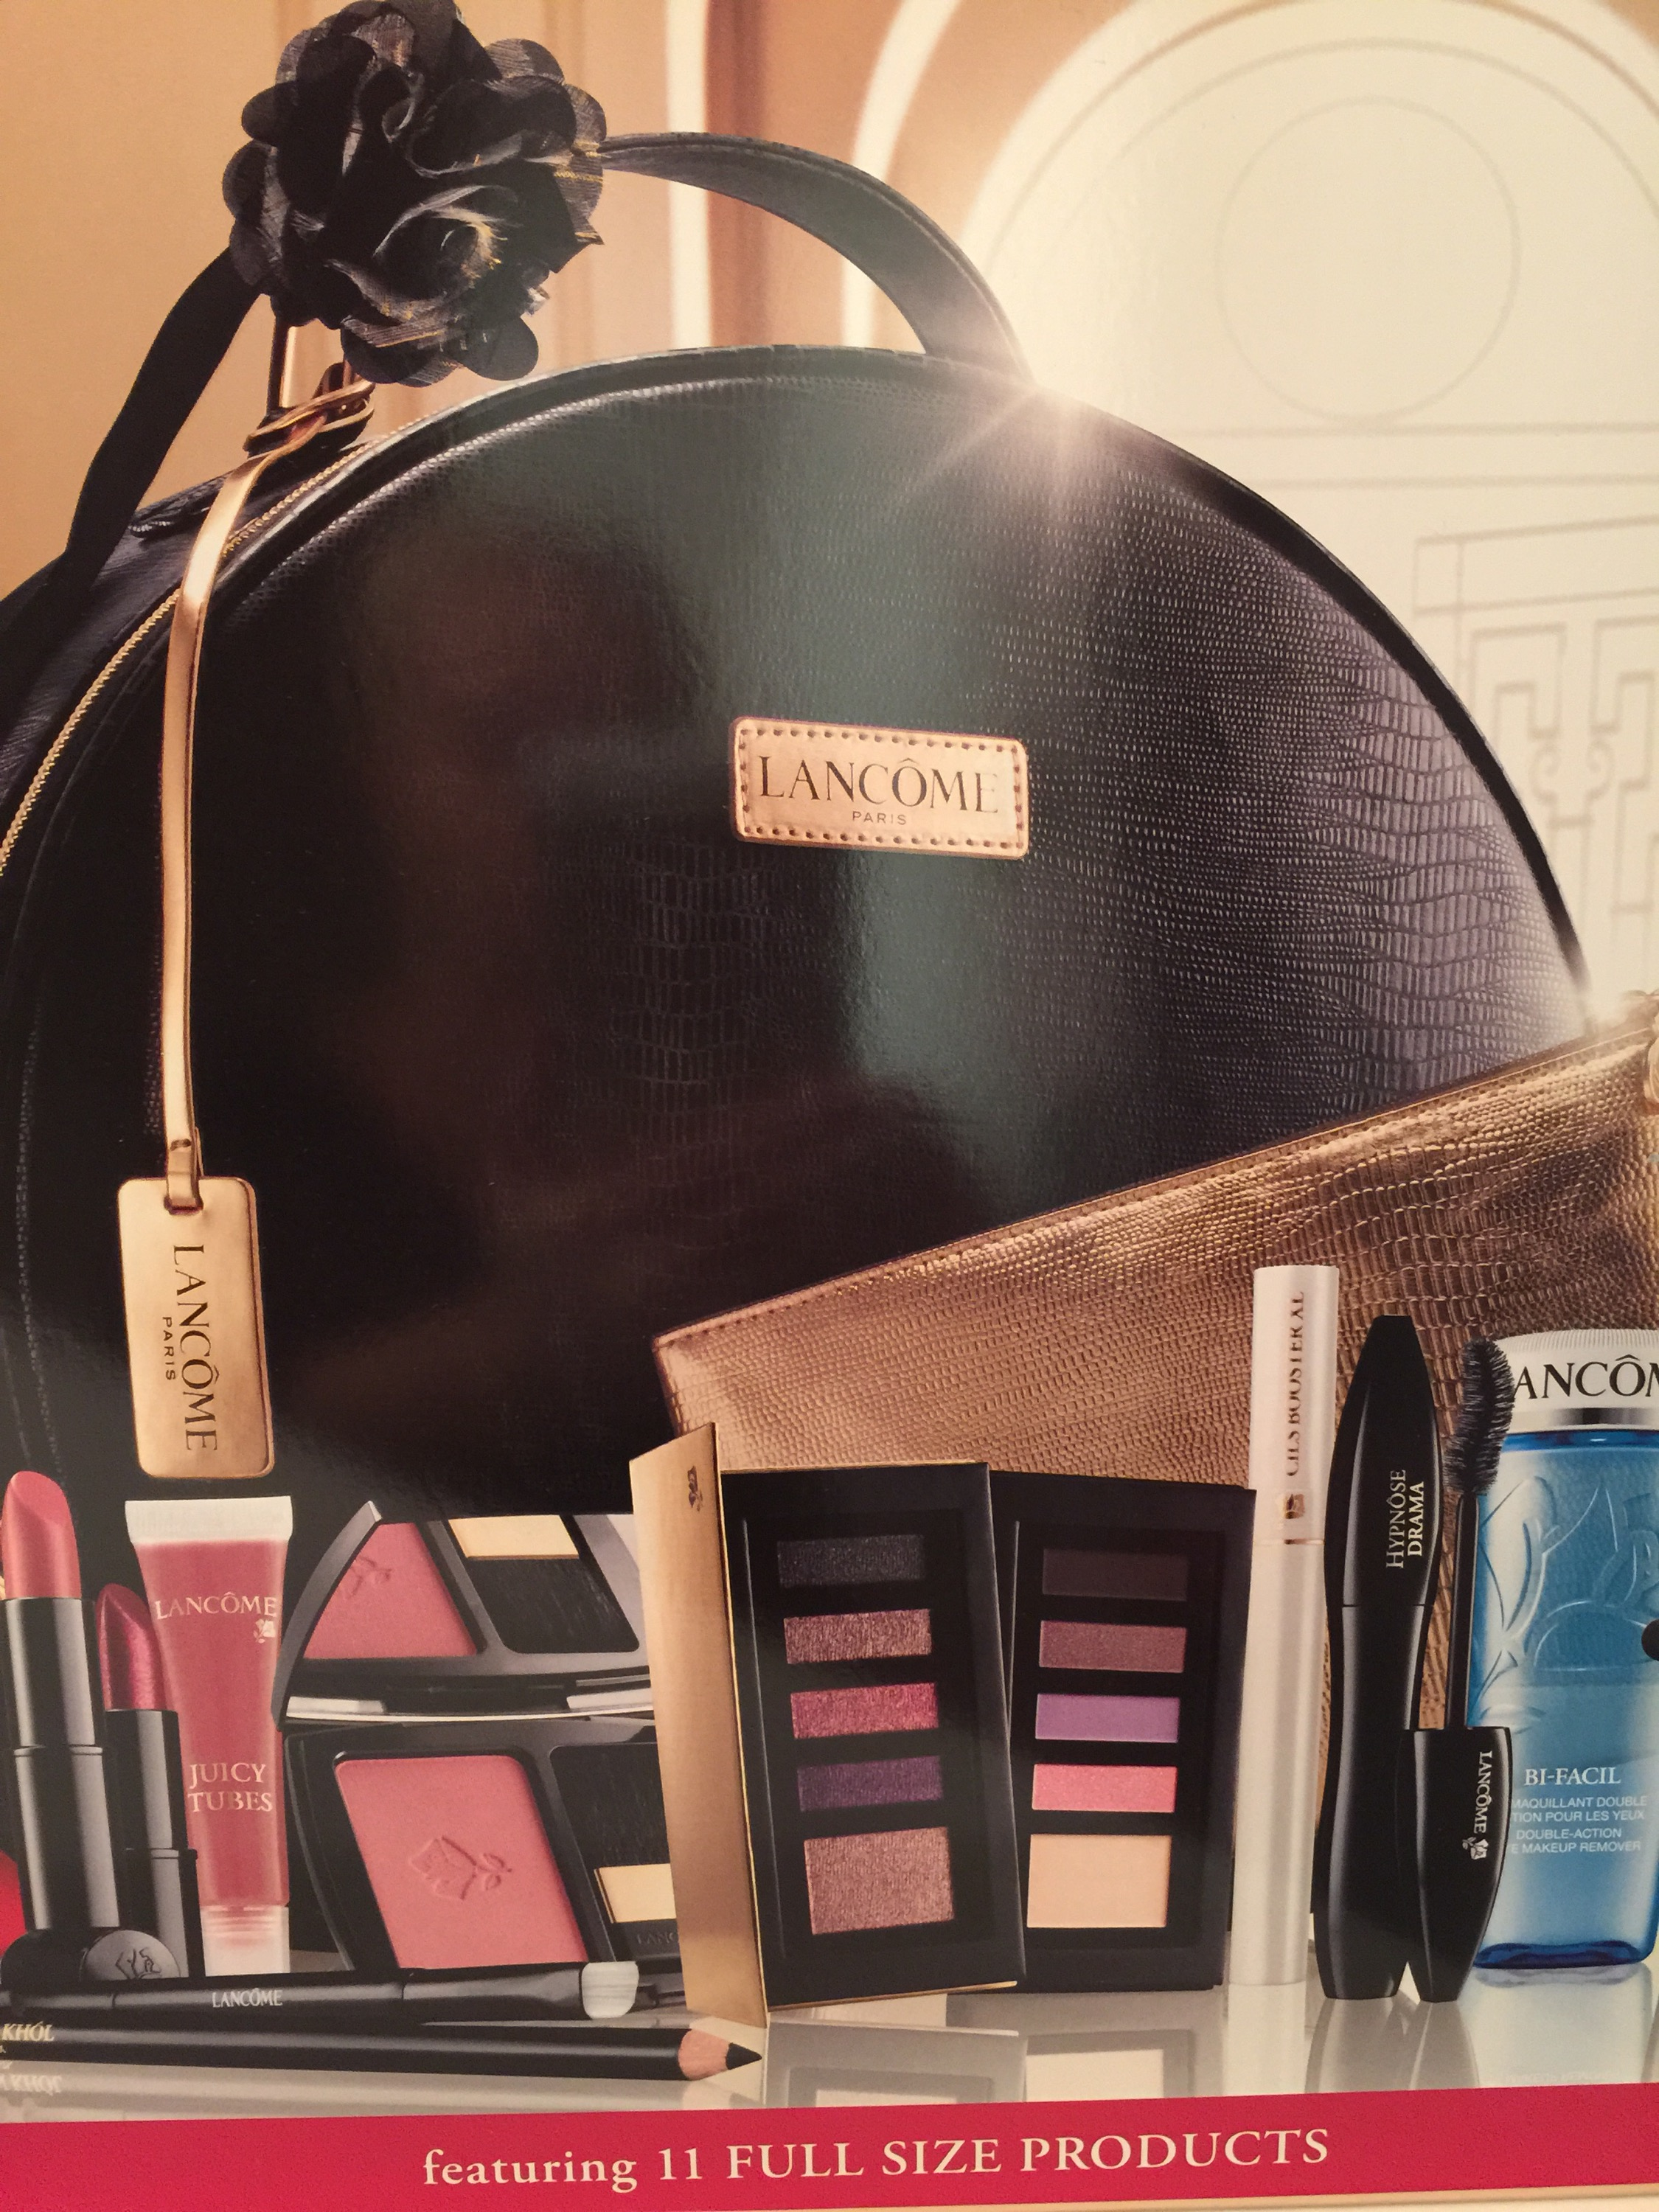 TIS THE SEASON…FOR LANCÔME !